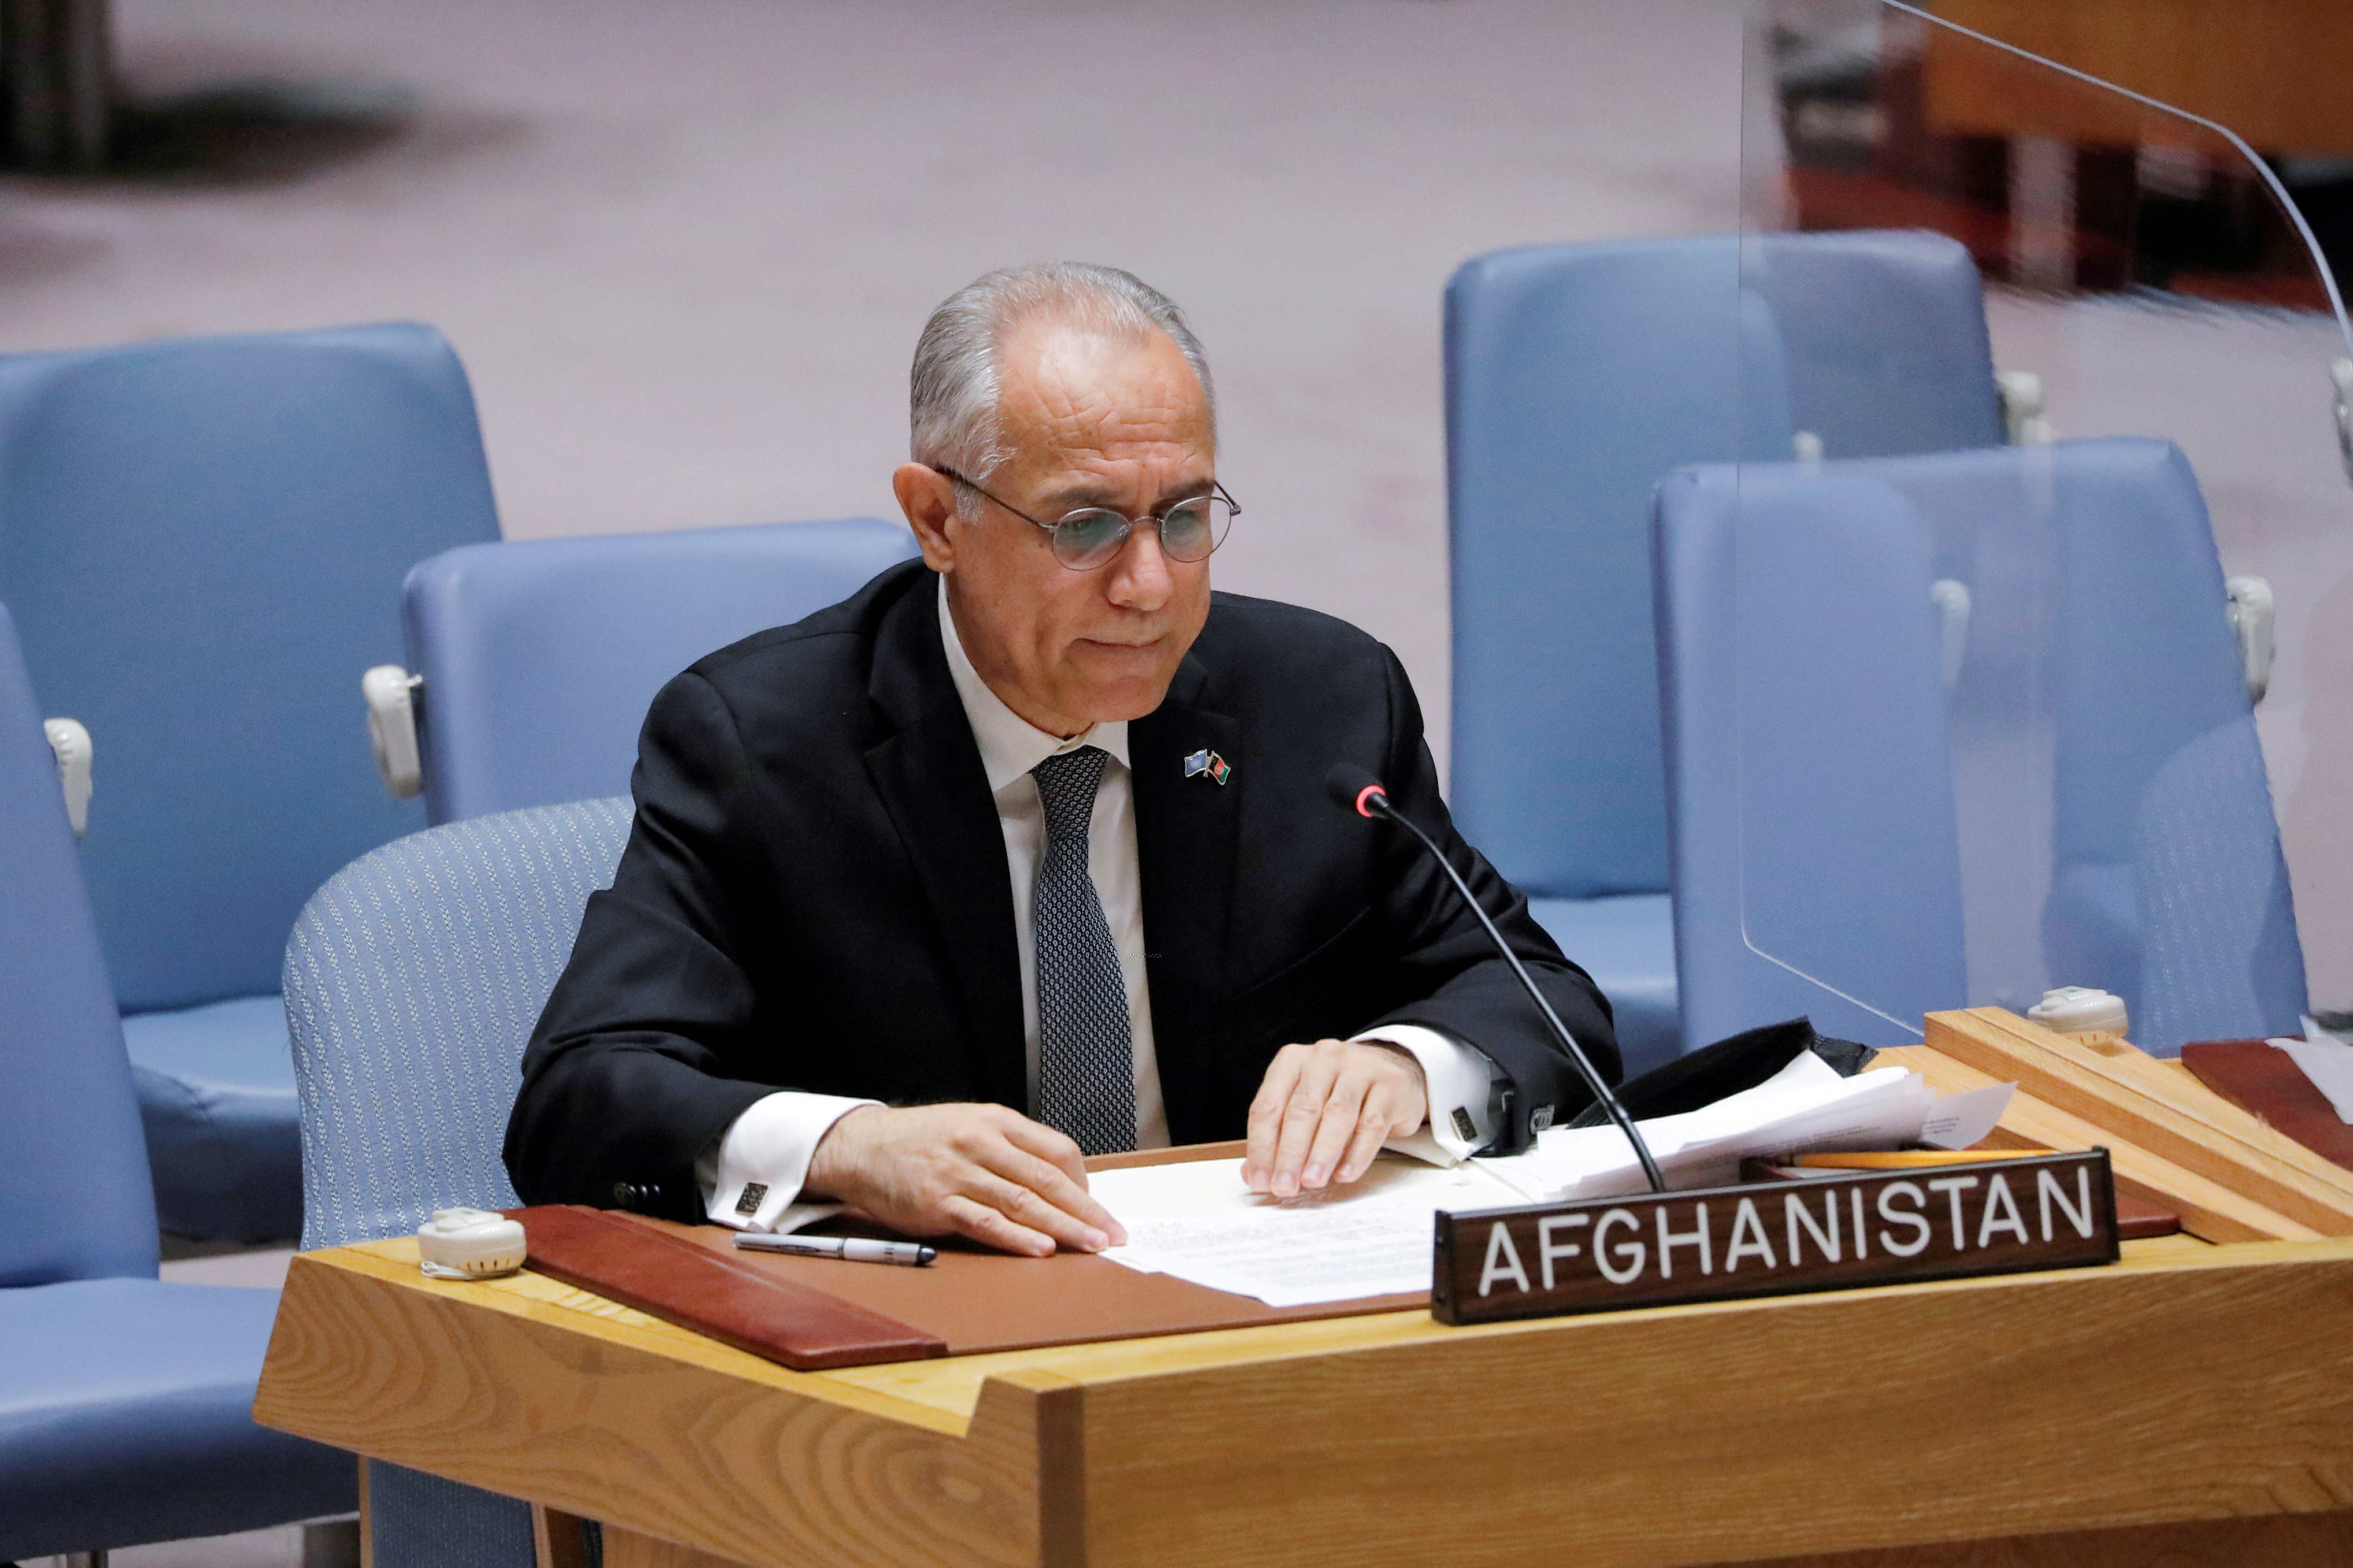 Afghanistan's U.N. ambassador Ghulam Isaczai addresses the United Nations Security Council regarding the situation in Afghanistan at the United Nations in New York City, New York, U.S., August 16, 2021. REUTERS/Andrew Kelly/File Photo